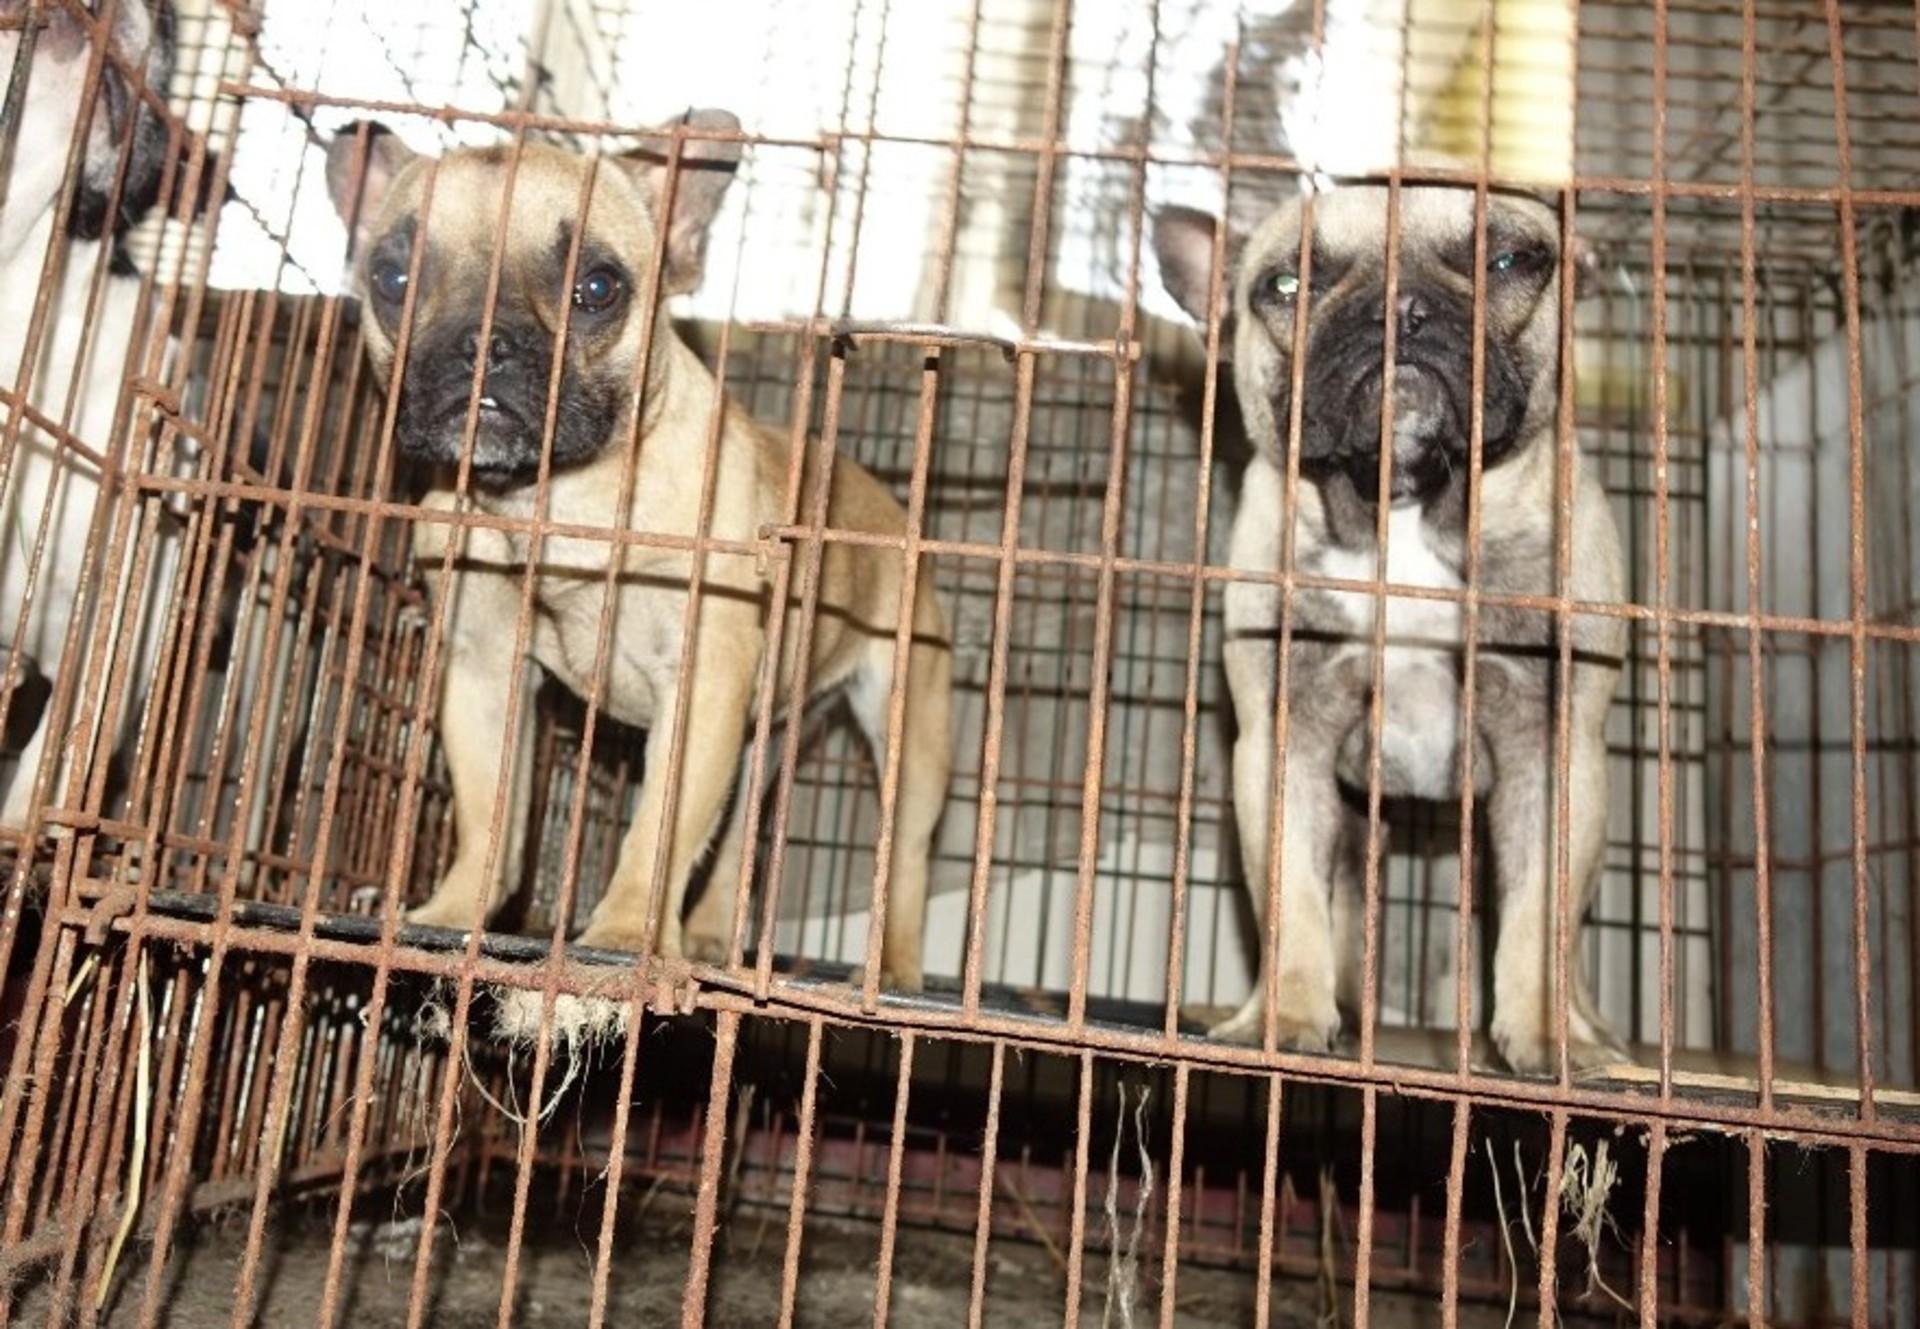 Puppy Mills and the Puppy Trade - Companion Animals - Topics